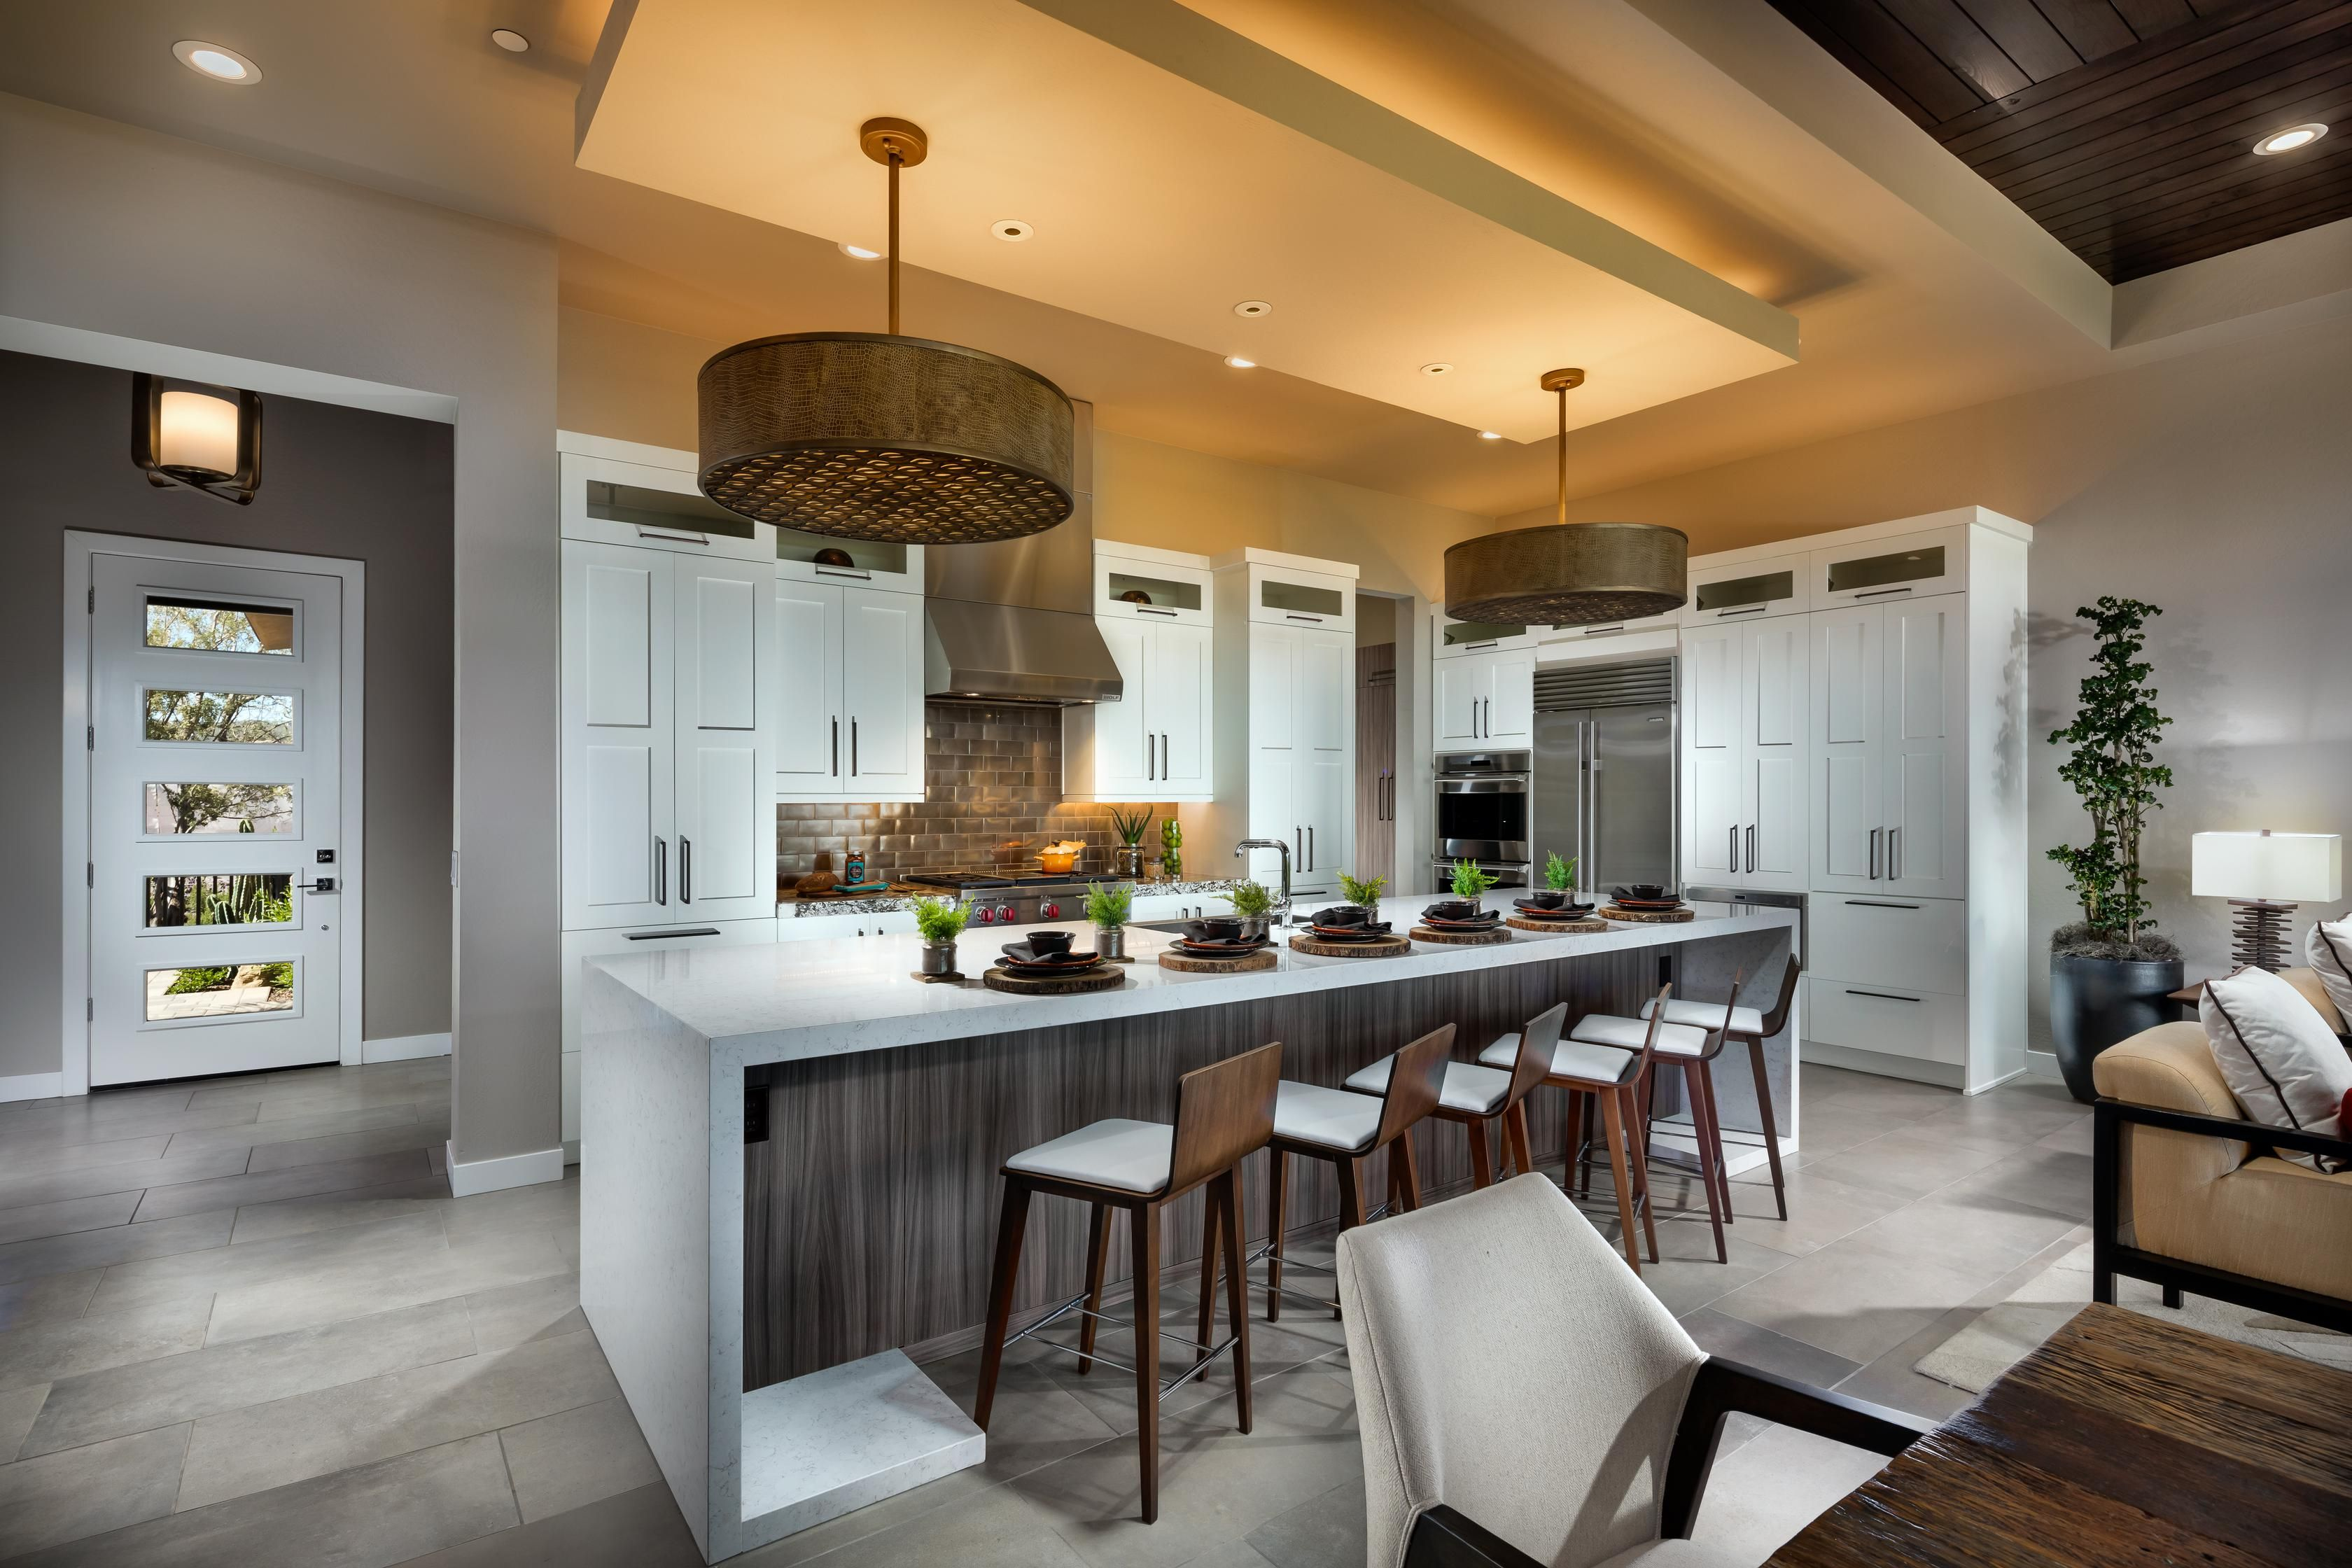 Sharpen Your Culinary Skills In This Spacious Kitchen Design From